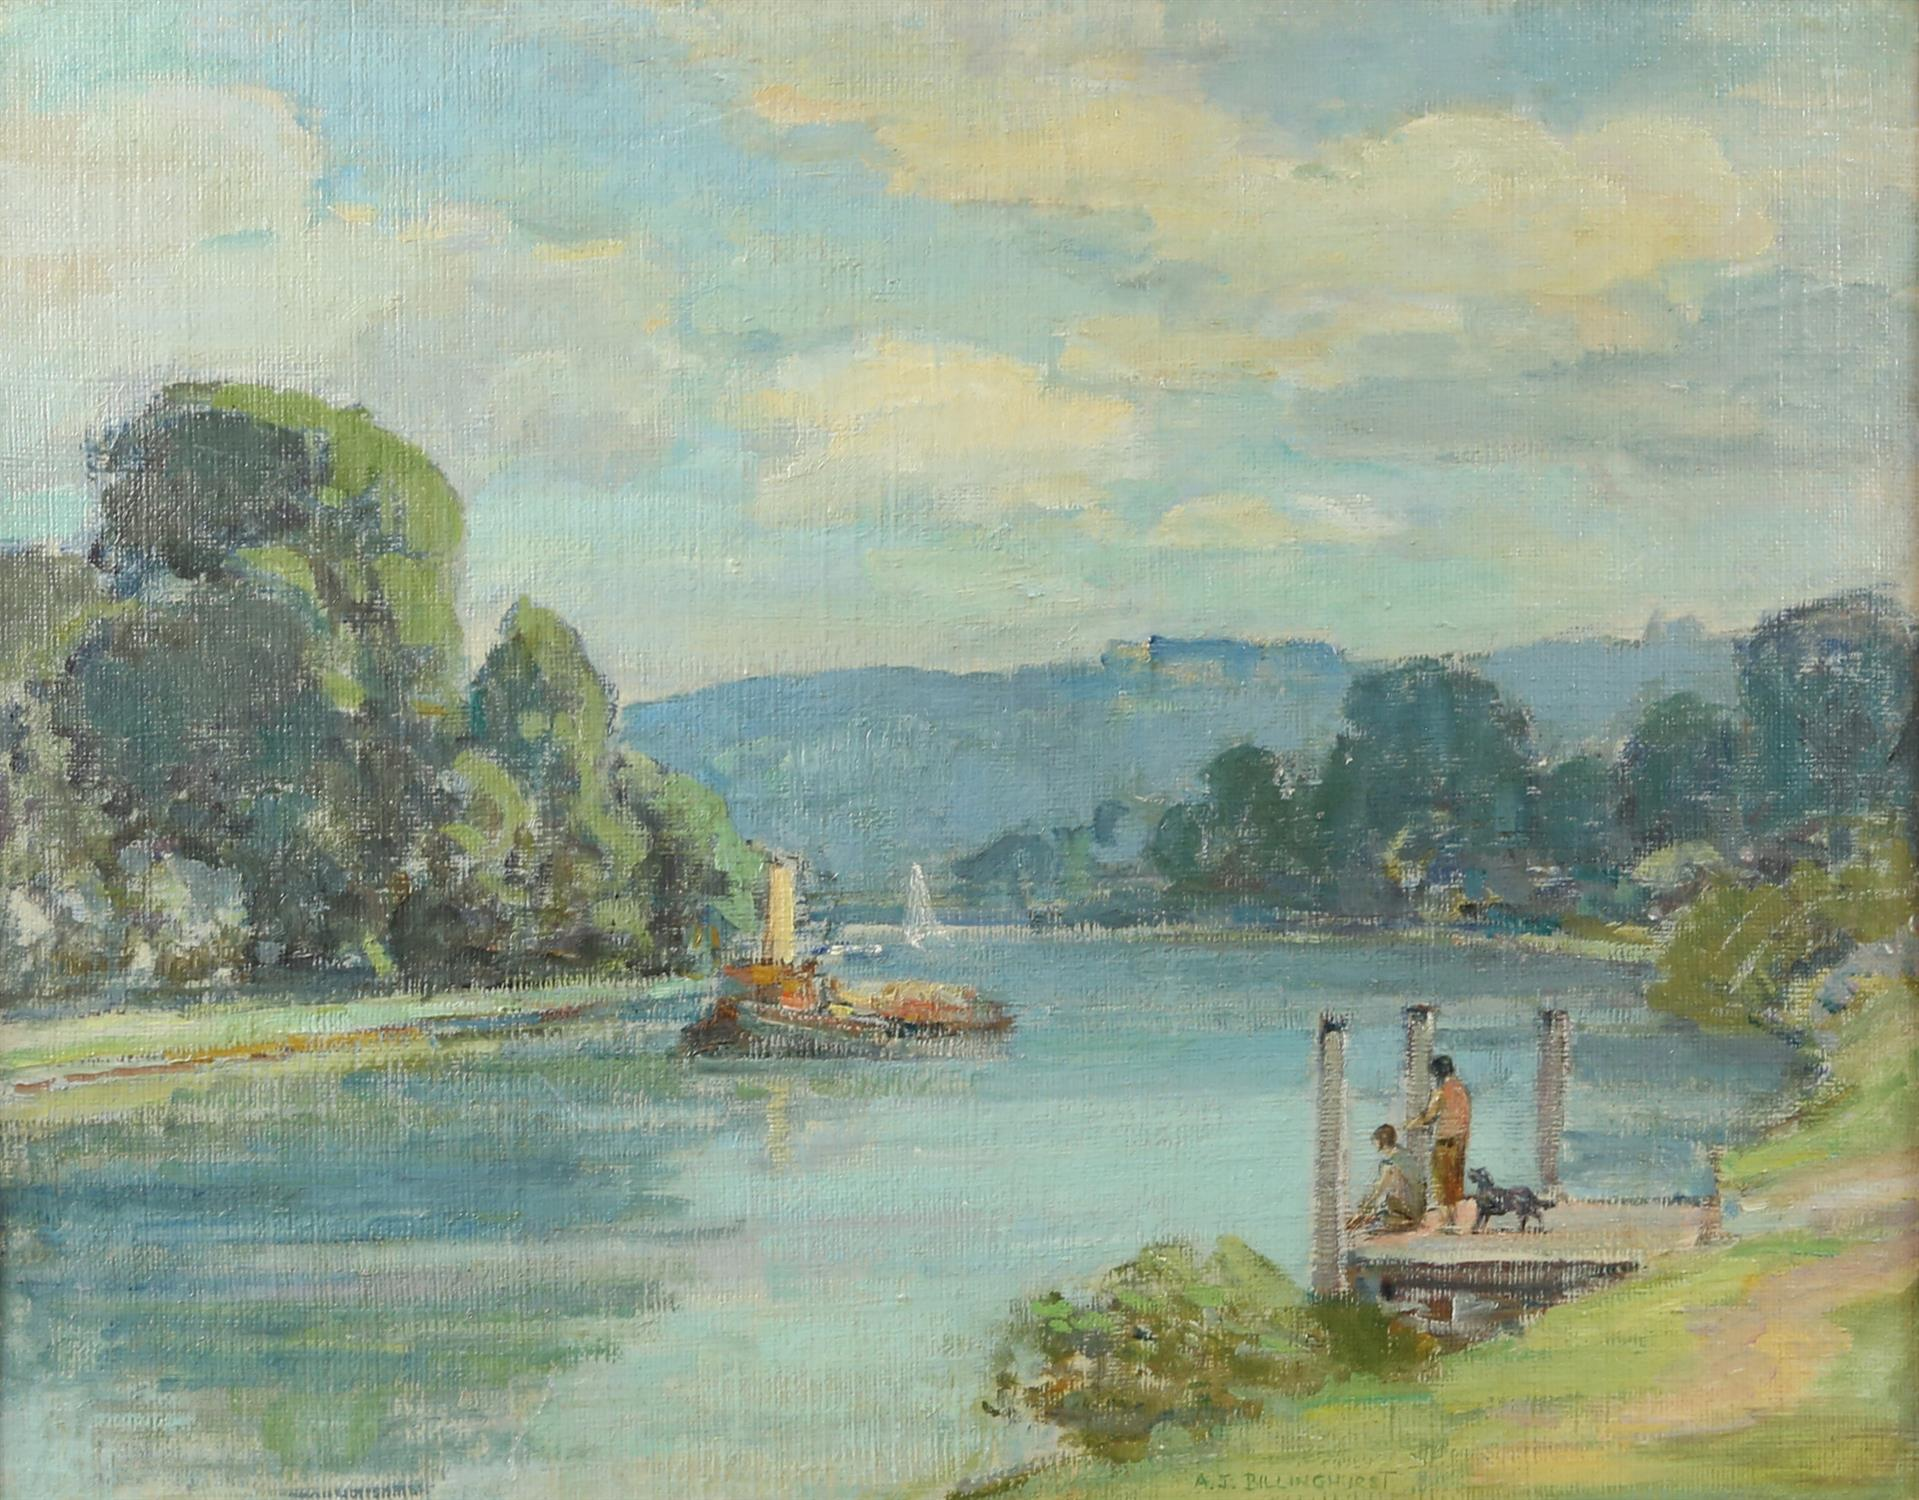 A J Billinghurst (British 1880-1963), river scene with steam barge and figures on a pontoon with a